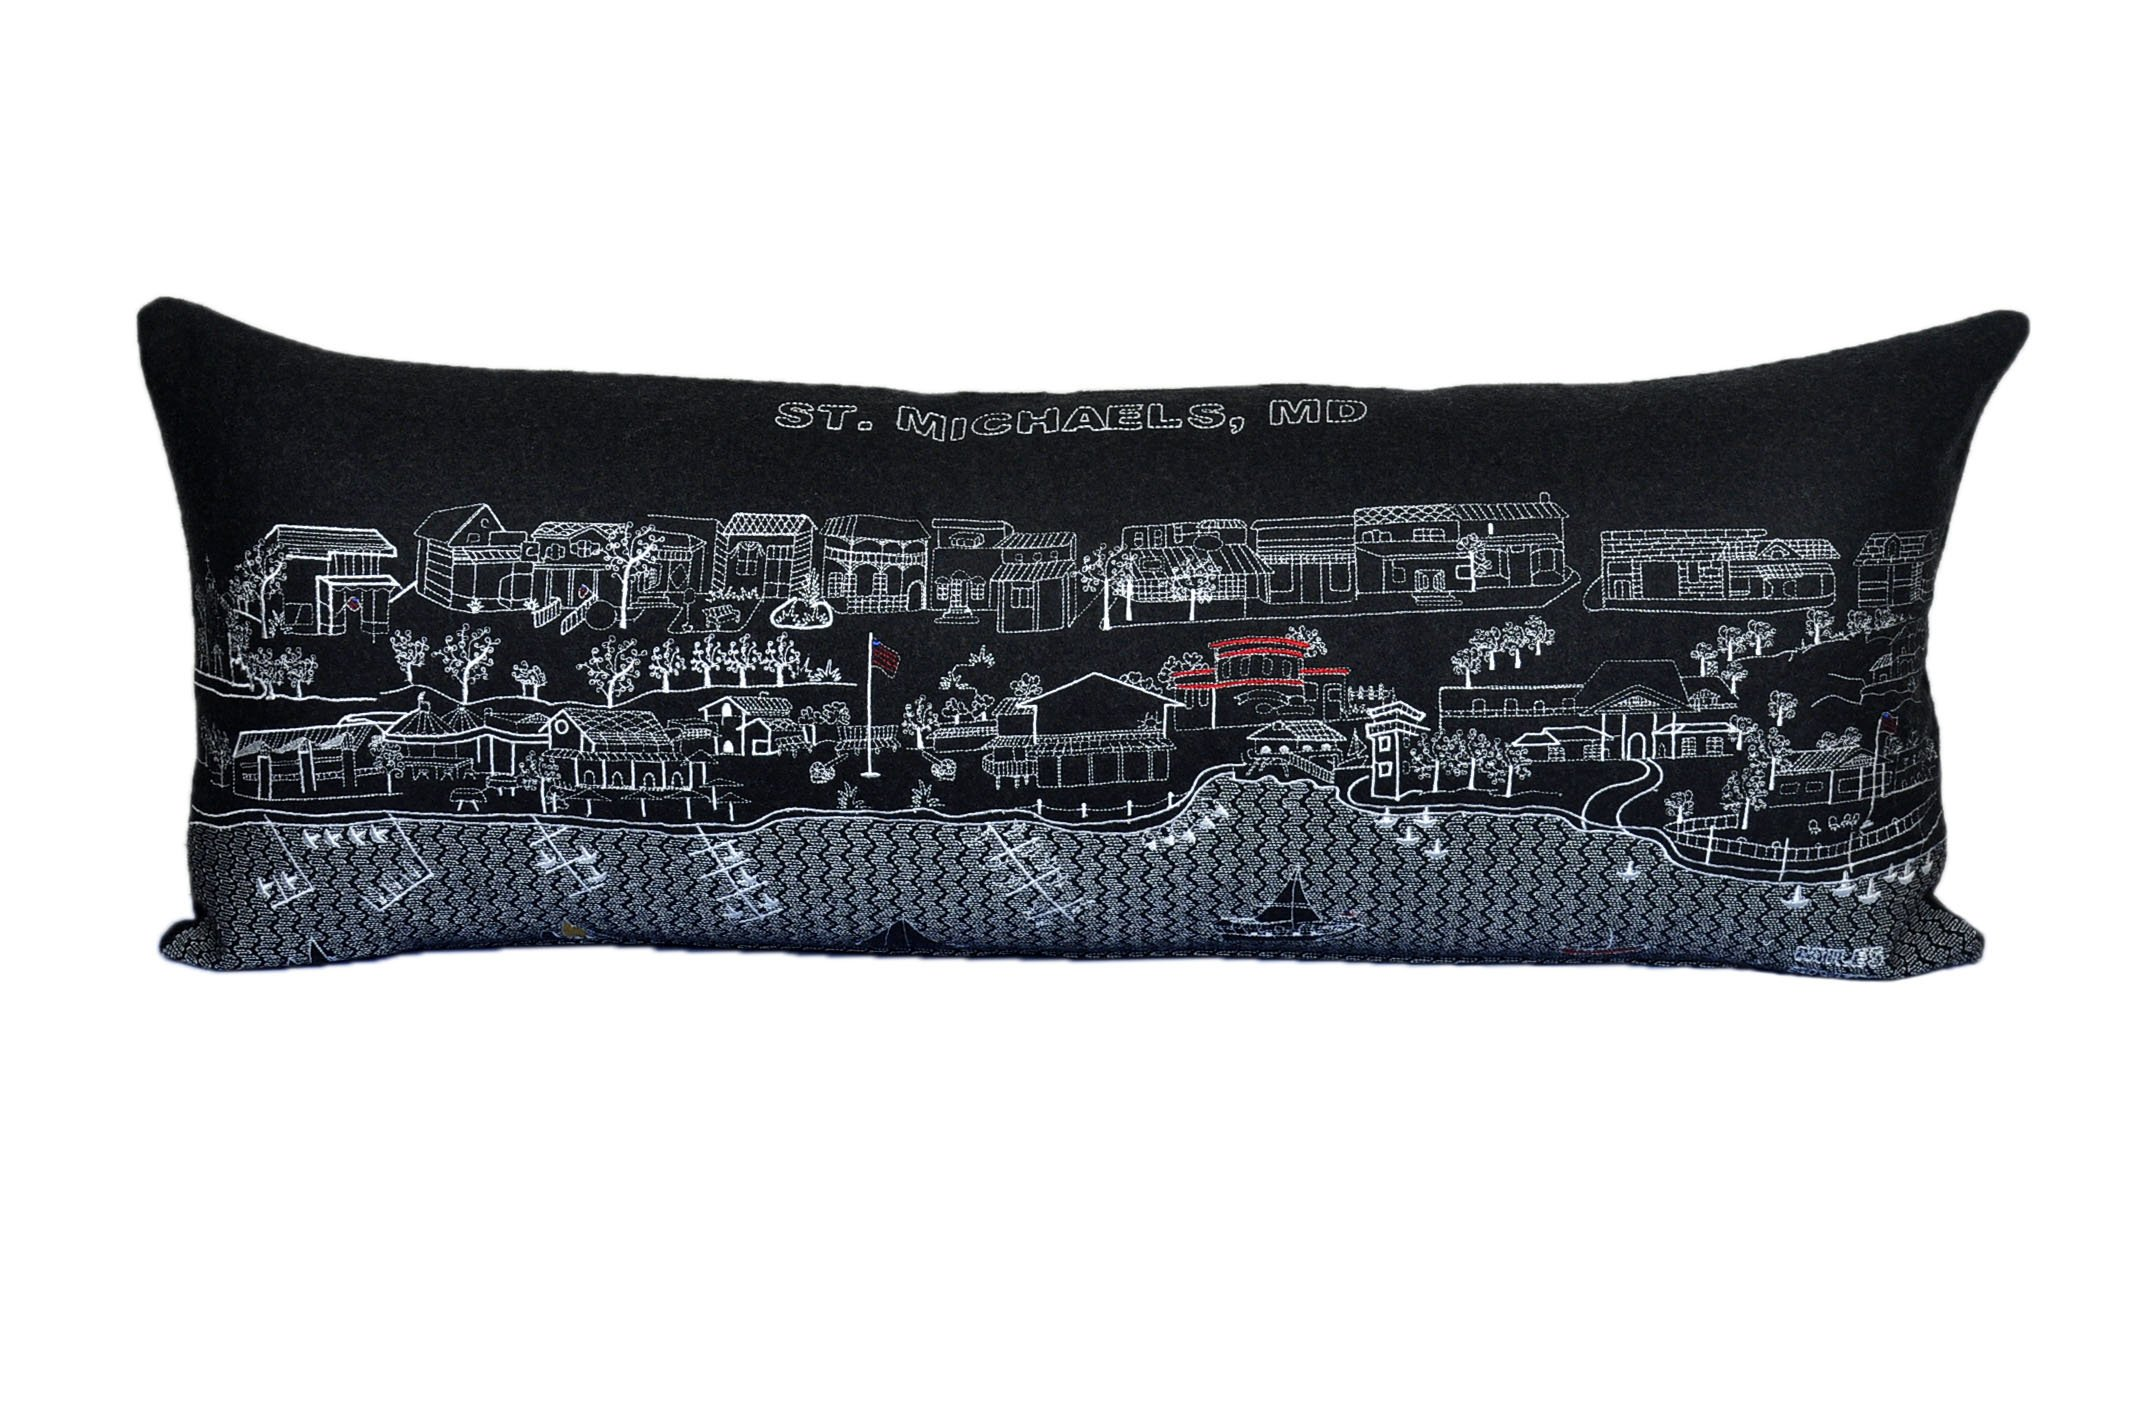 Beyond Cushions Polyester Throw Pillows Beyond Cushions St. Michaels Md Night Skyline Queen Size Embroidered Pillow 35 X 14 X 5 Inches Black Model # STM-NGT-QUN